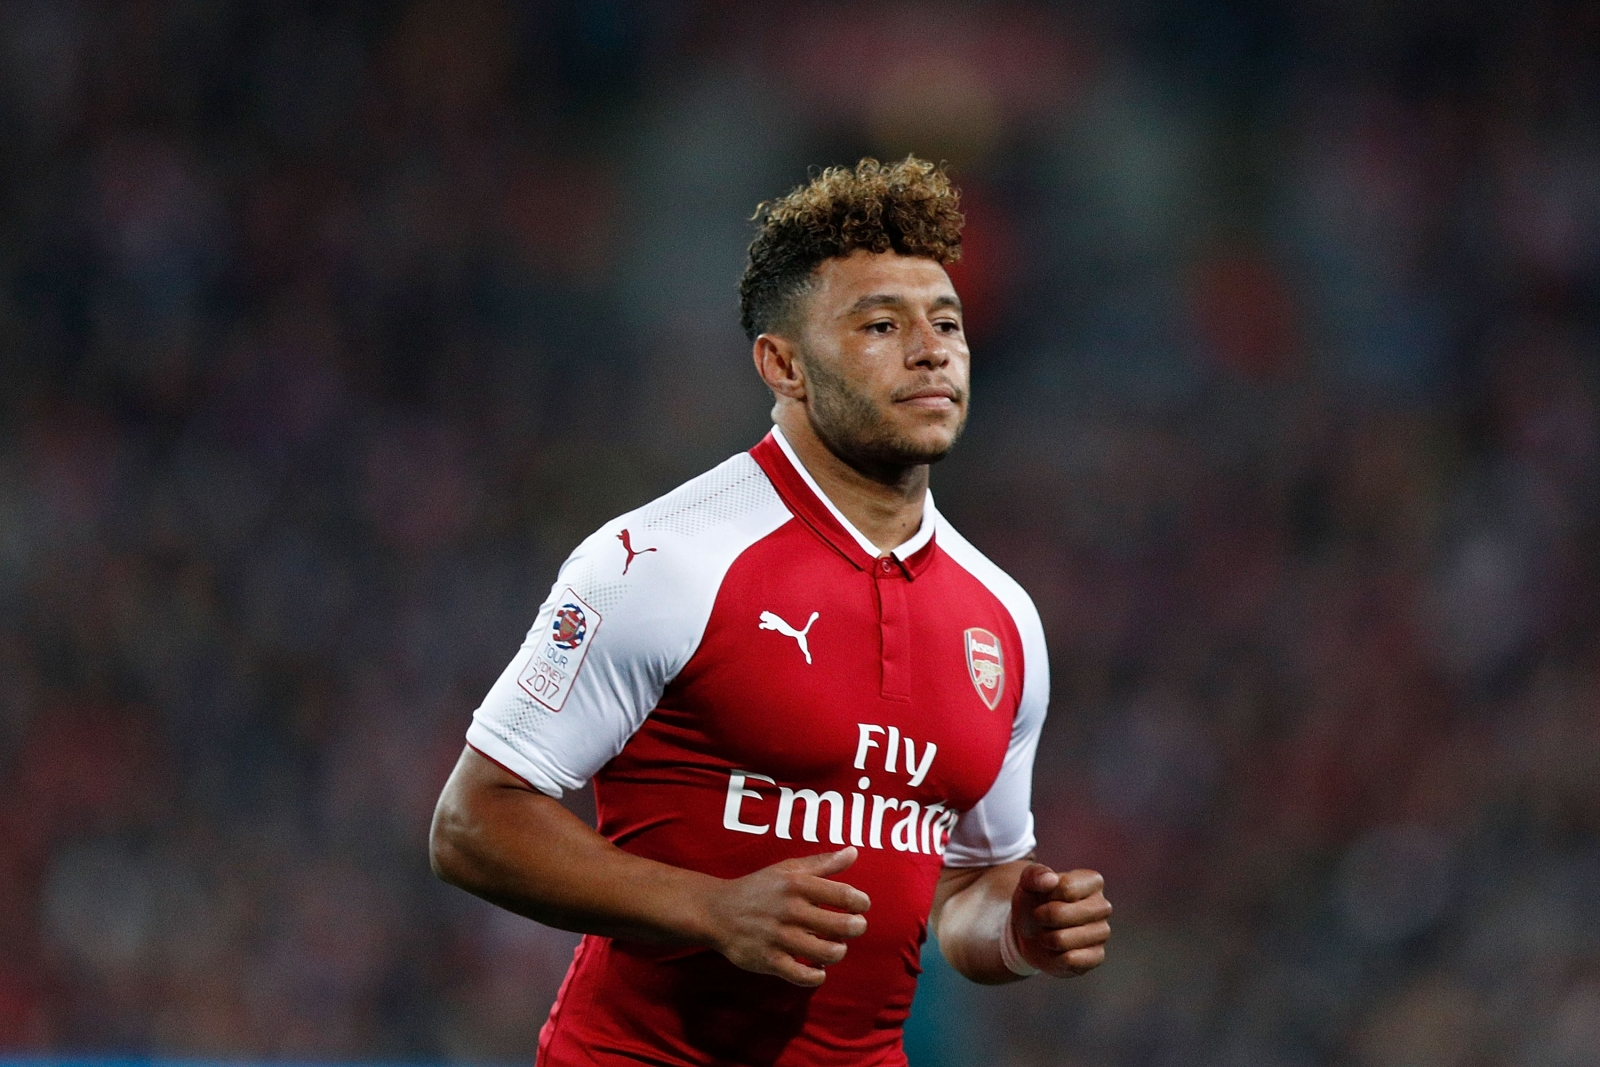 Arsene Wenger insists Alex Oxlade-Chamberlain will stay at